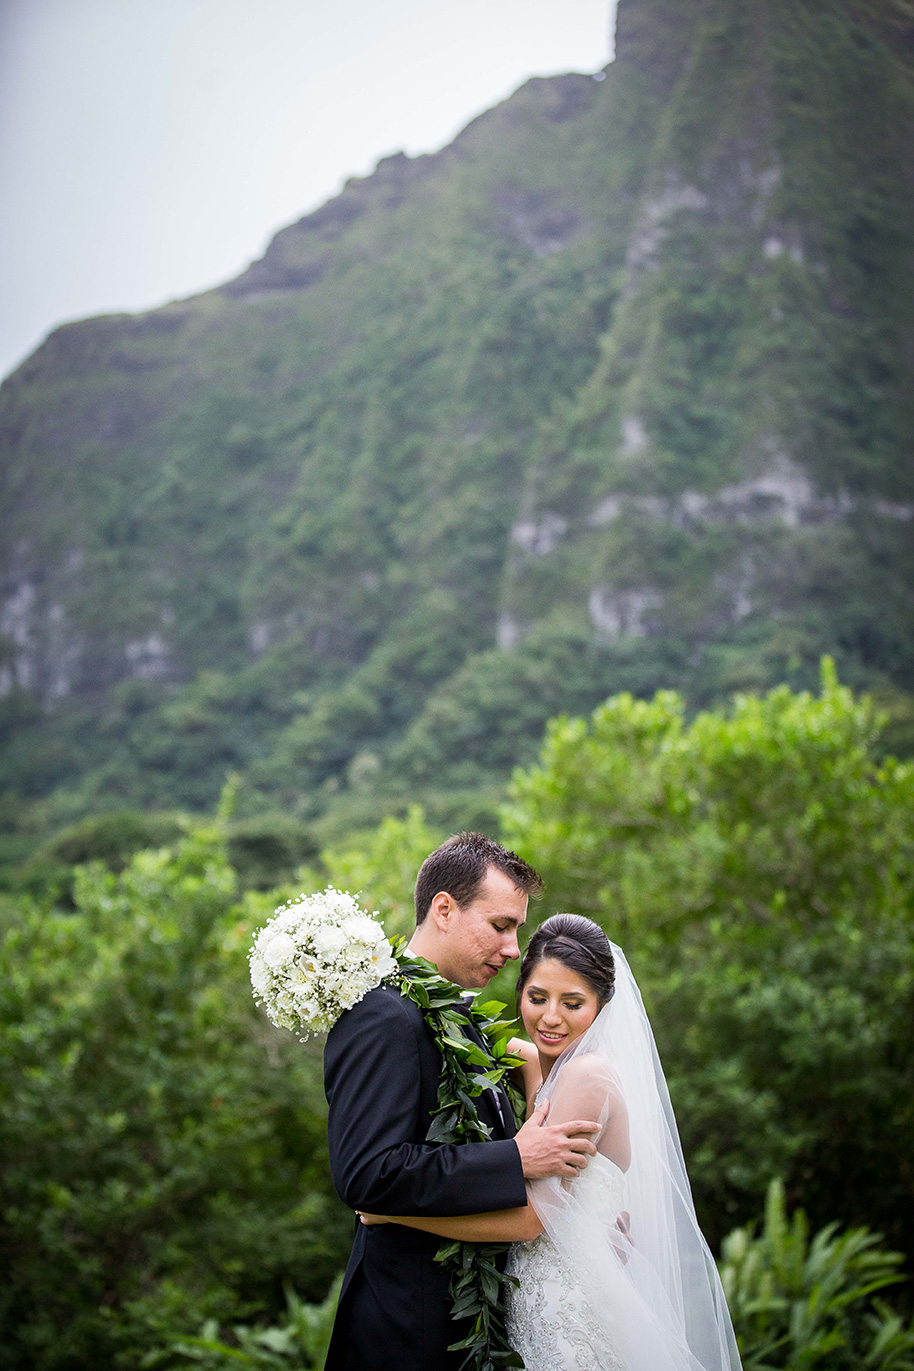 Koolau-Ballrooms-Wedding-041116-10.jpg